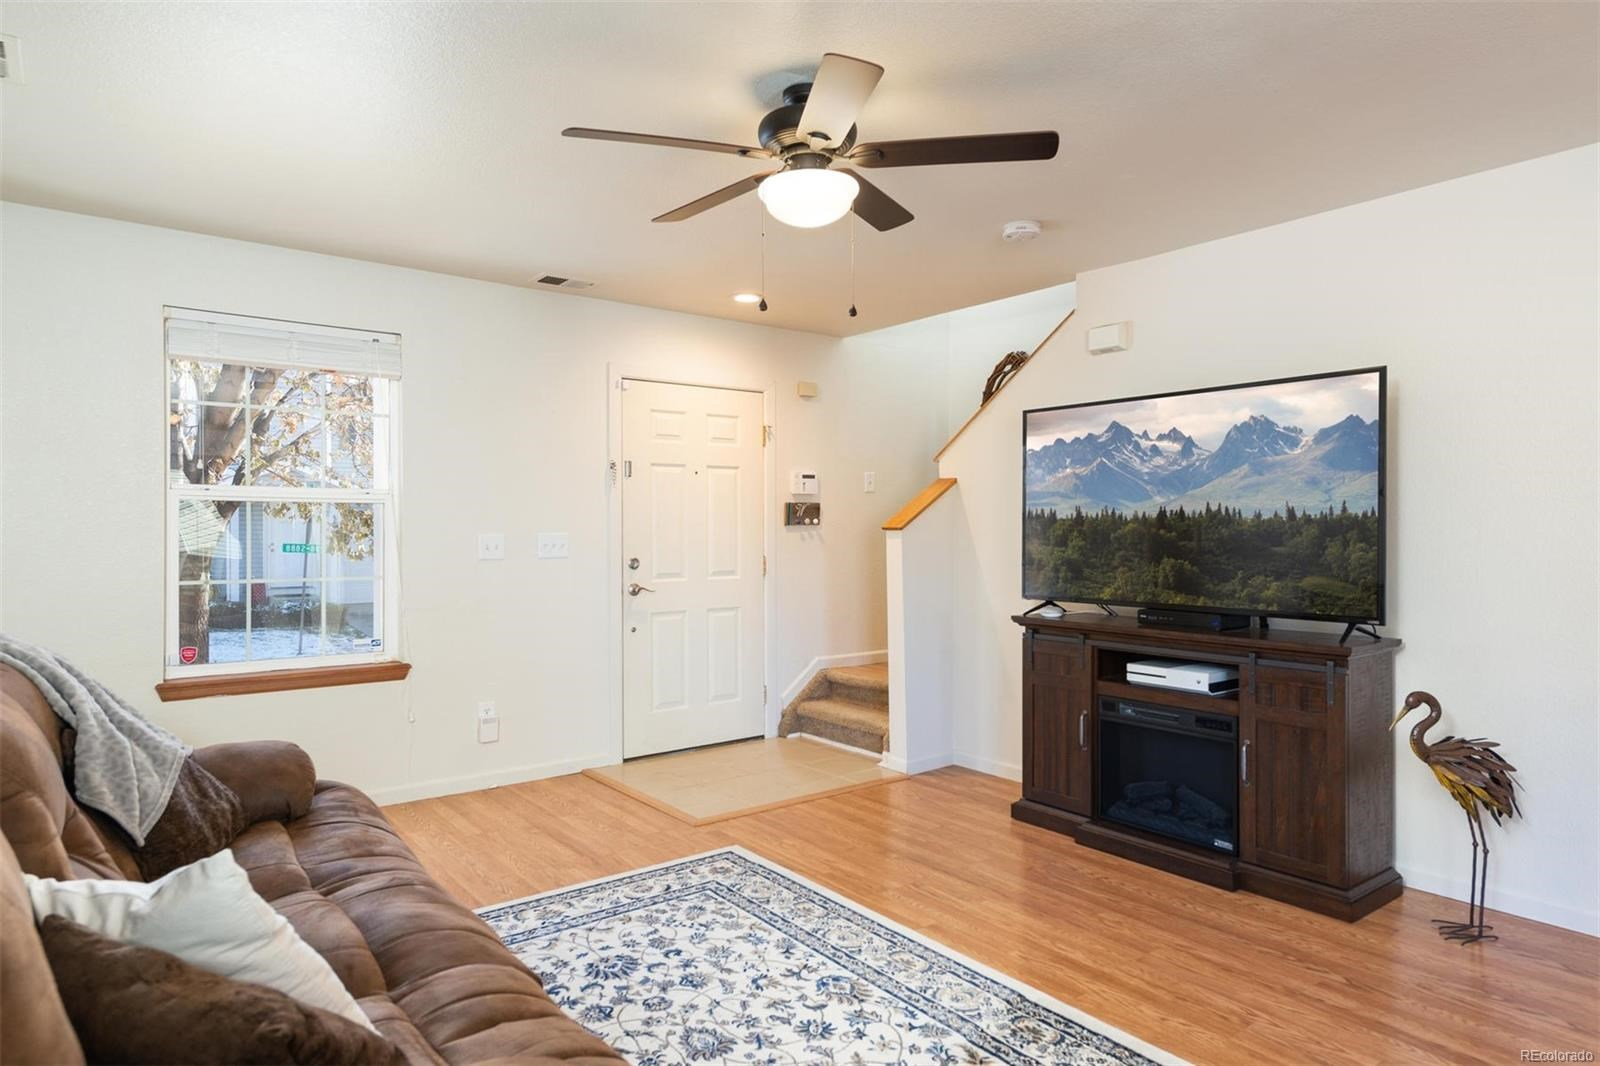 MLS# 6800957 - 4 - 8891 Lowell Way, Westminster, CO 80031